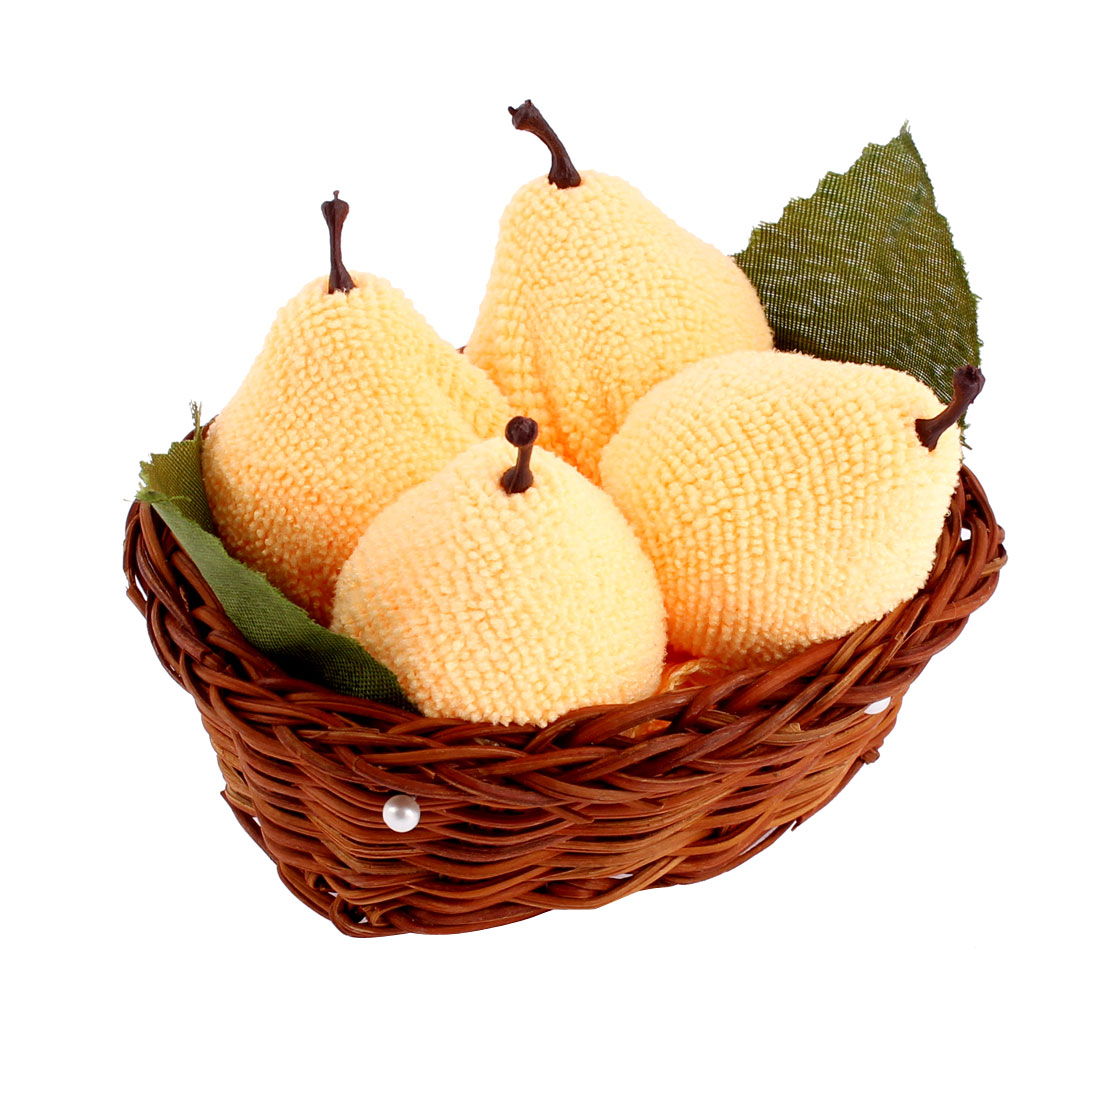 Pear Design Basket Decor Wedding Party Gift Fold Washcloth Hand Towel Yellow